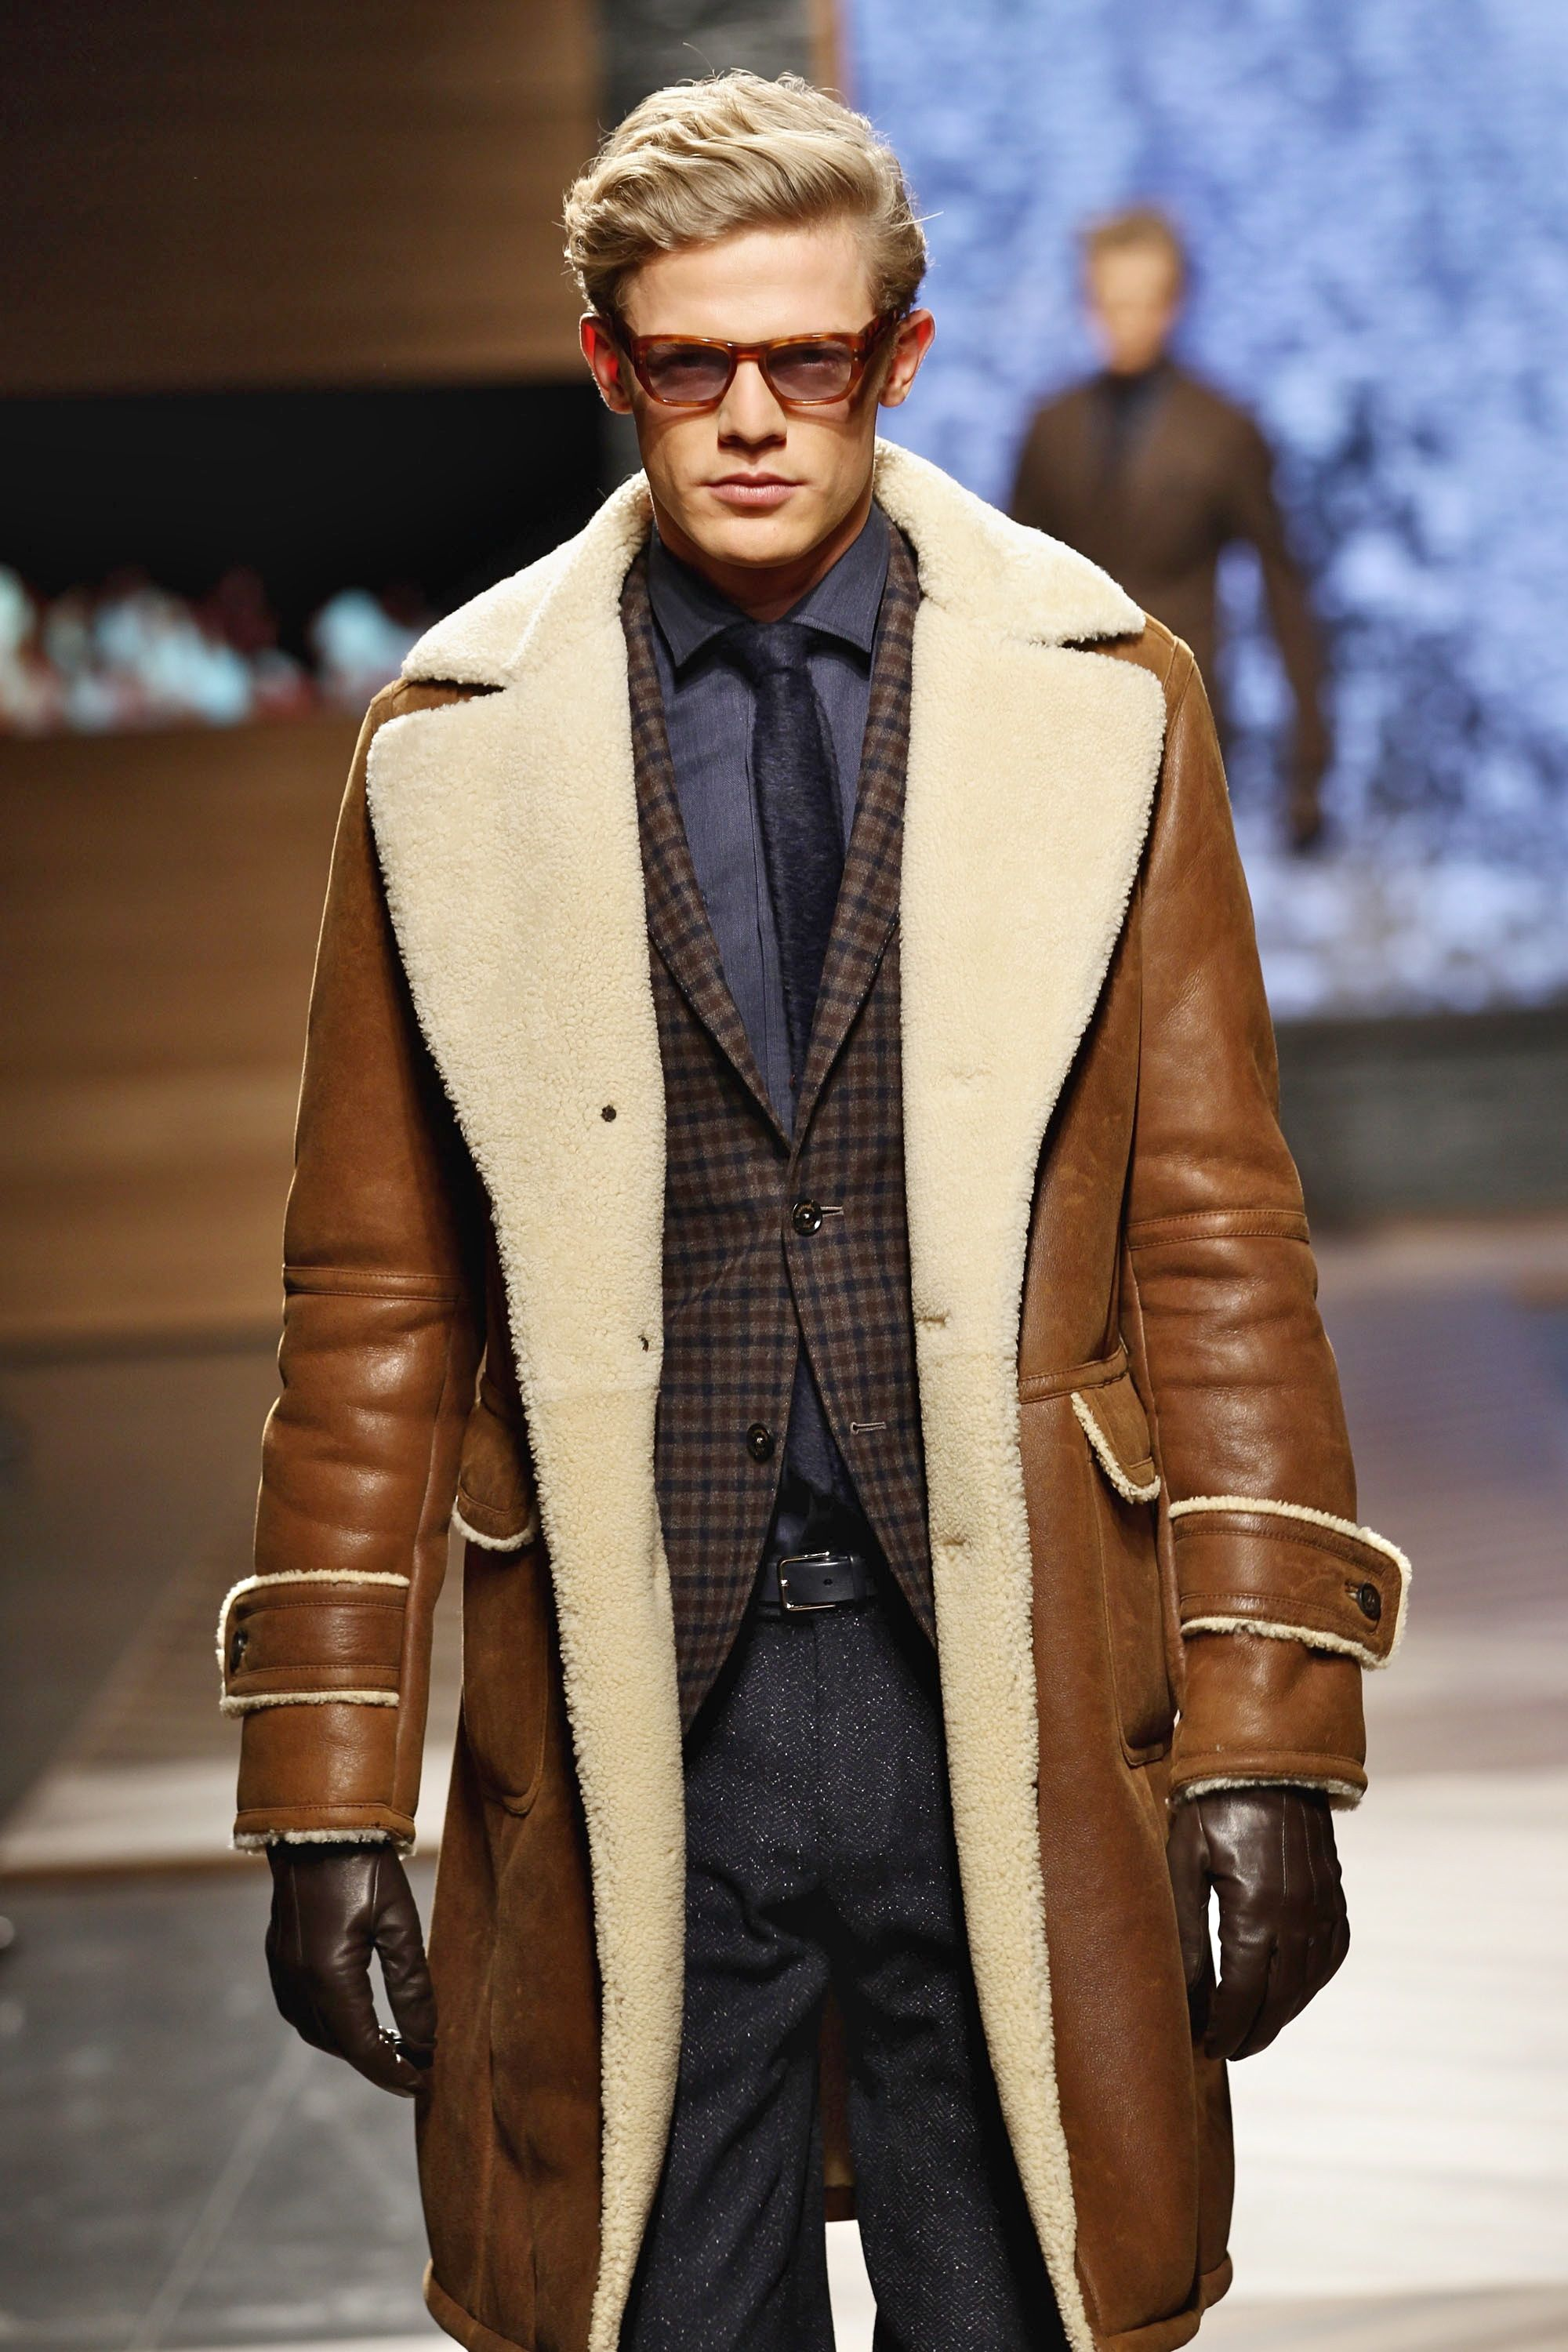 Men's Leather Coats and Jackets for Fall | Sheepskin coat, Mens ...